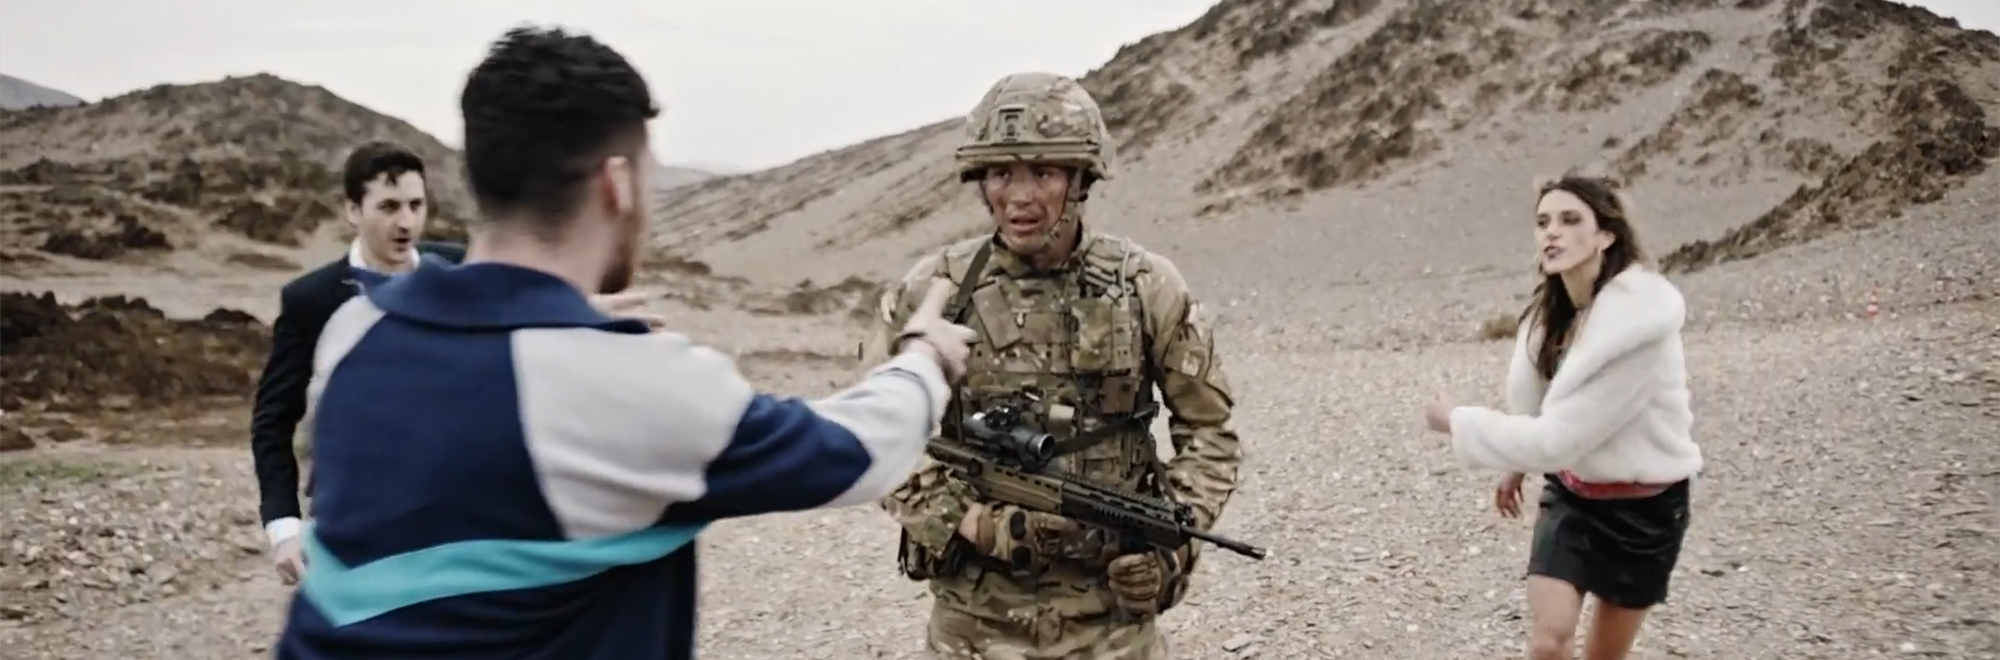 Army Confidence Lasts a Lifetime: Karmarama launches fourth evolution of This is Belonging campaign for The British Army